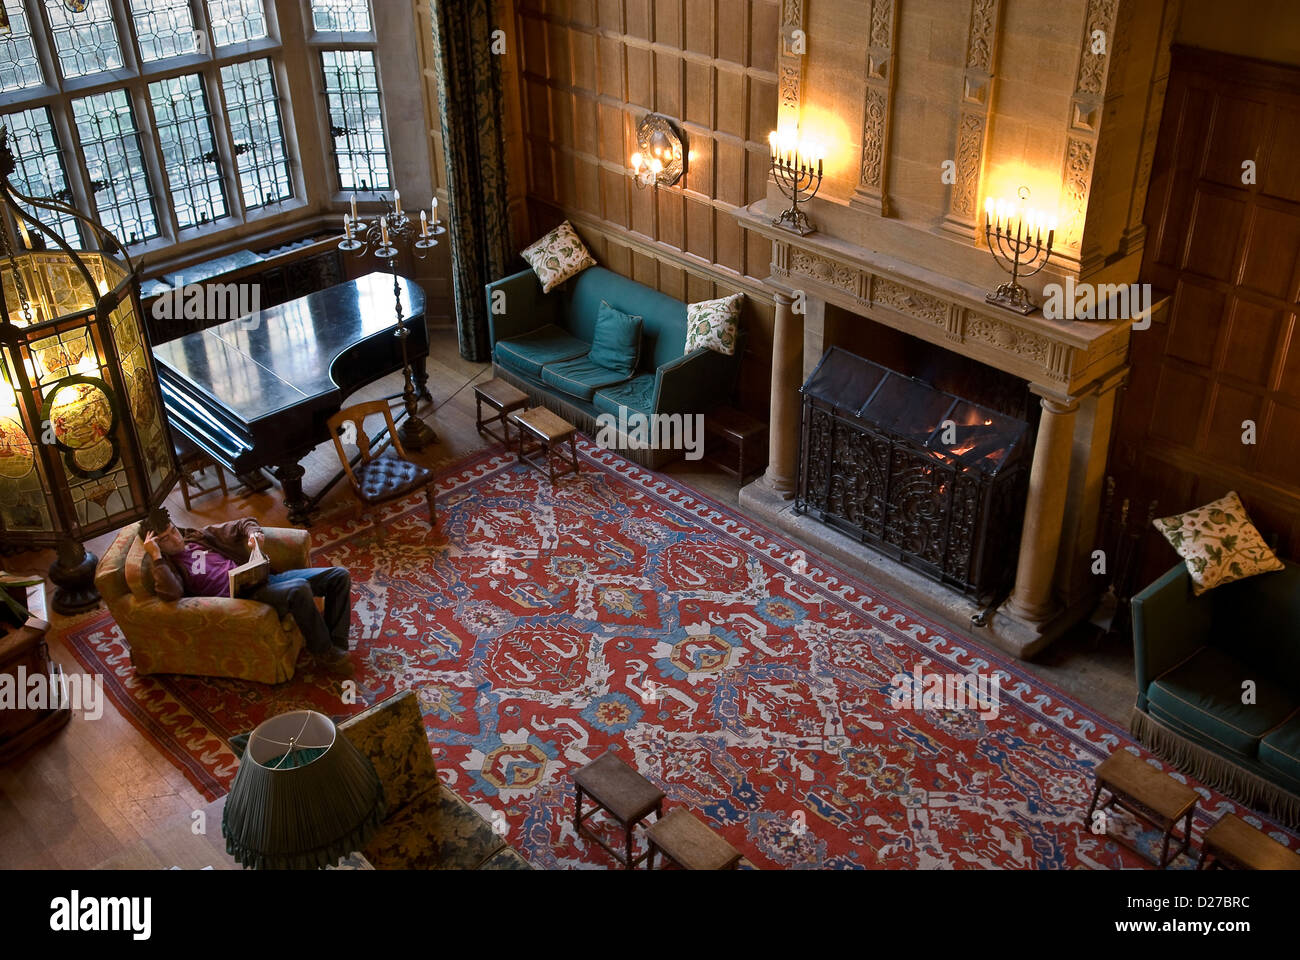 Student reading and relaxing by the fireside in the main hall at West Dean College, Chichester, West Sussex, UK - Stock Image